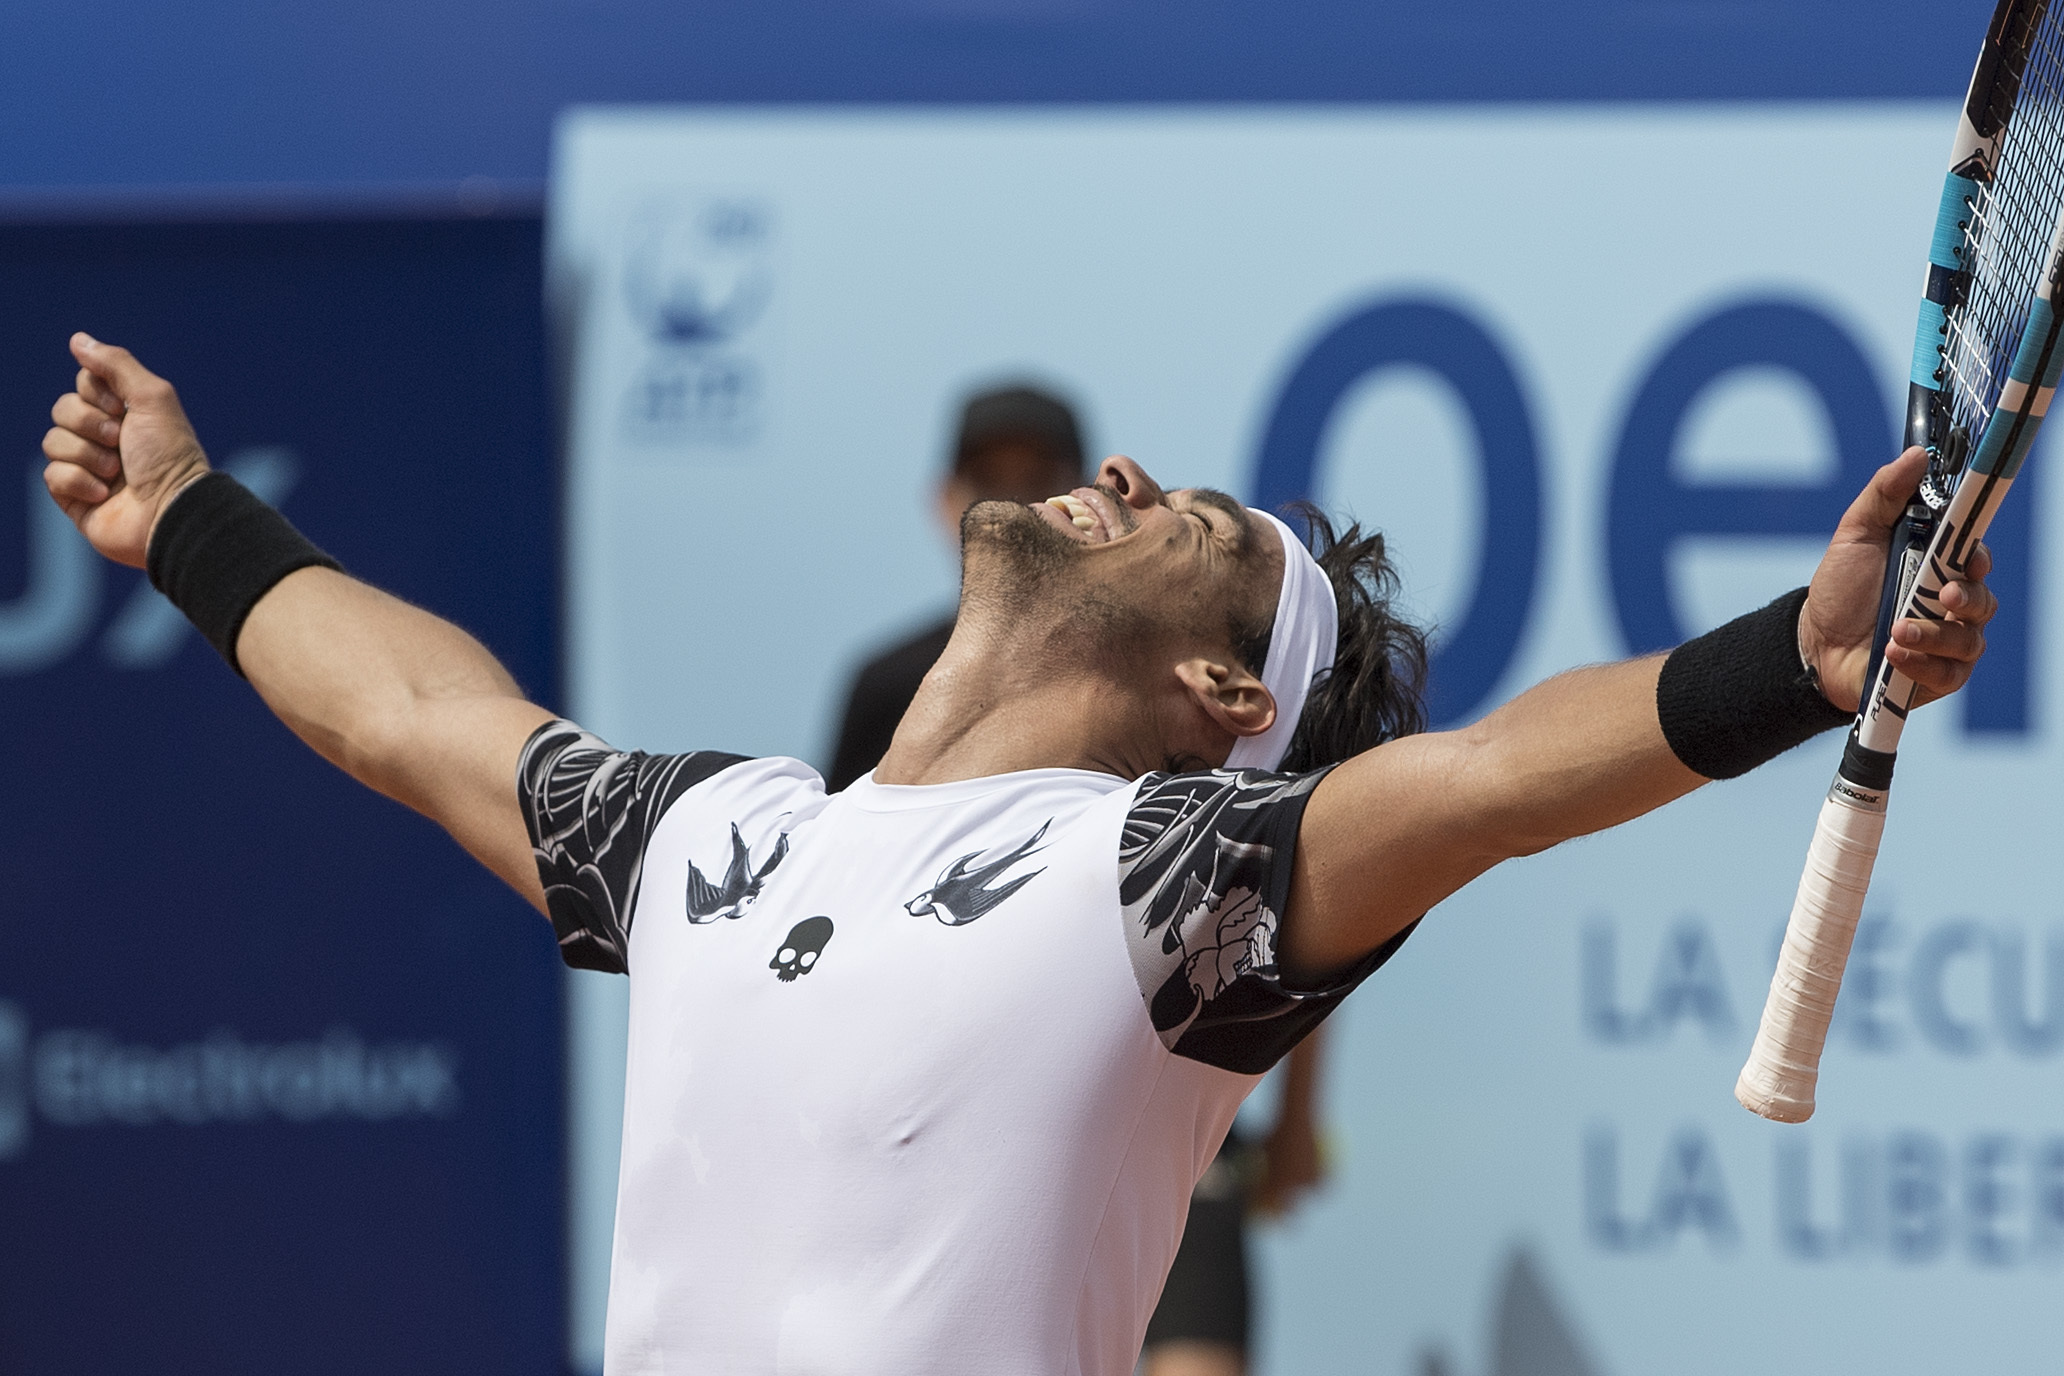 Fabio Fognini of Italy celebrates his victory after winning the final match against Yannick Hanfmann of Germany at the Swiss Open tennis tournament in Gstaad, Switzerland, Sunday, July 30, 2017. (Peter Schneider/Keystone via AP)